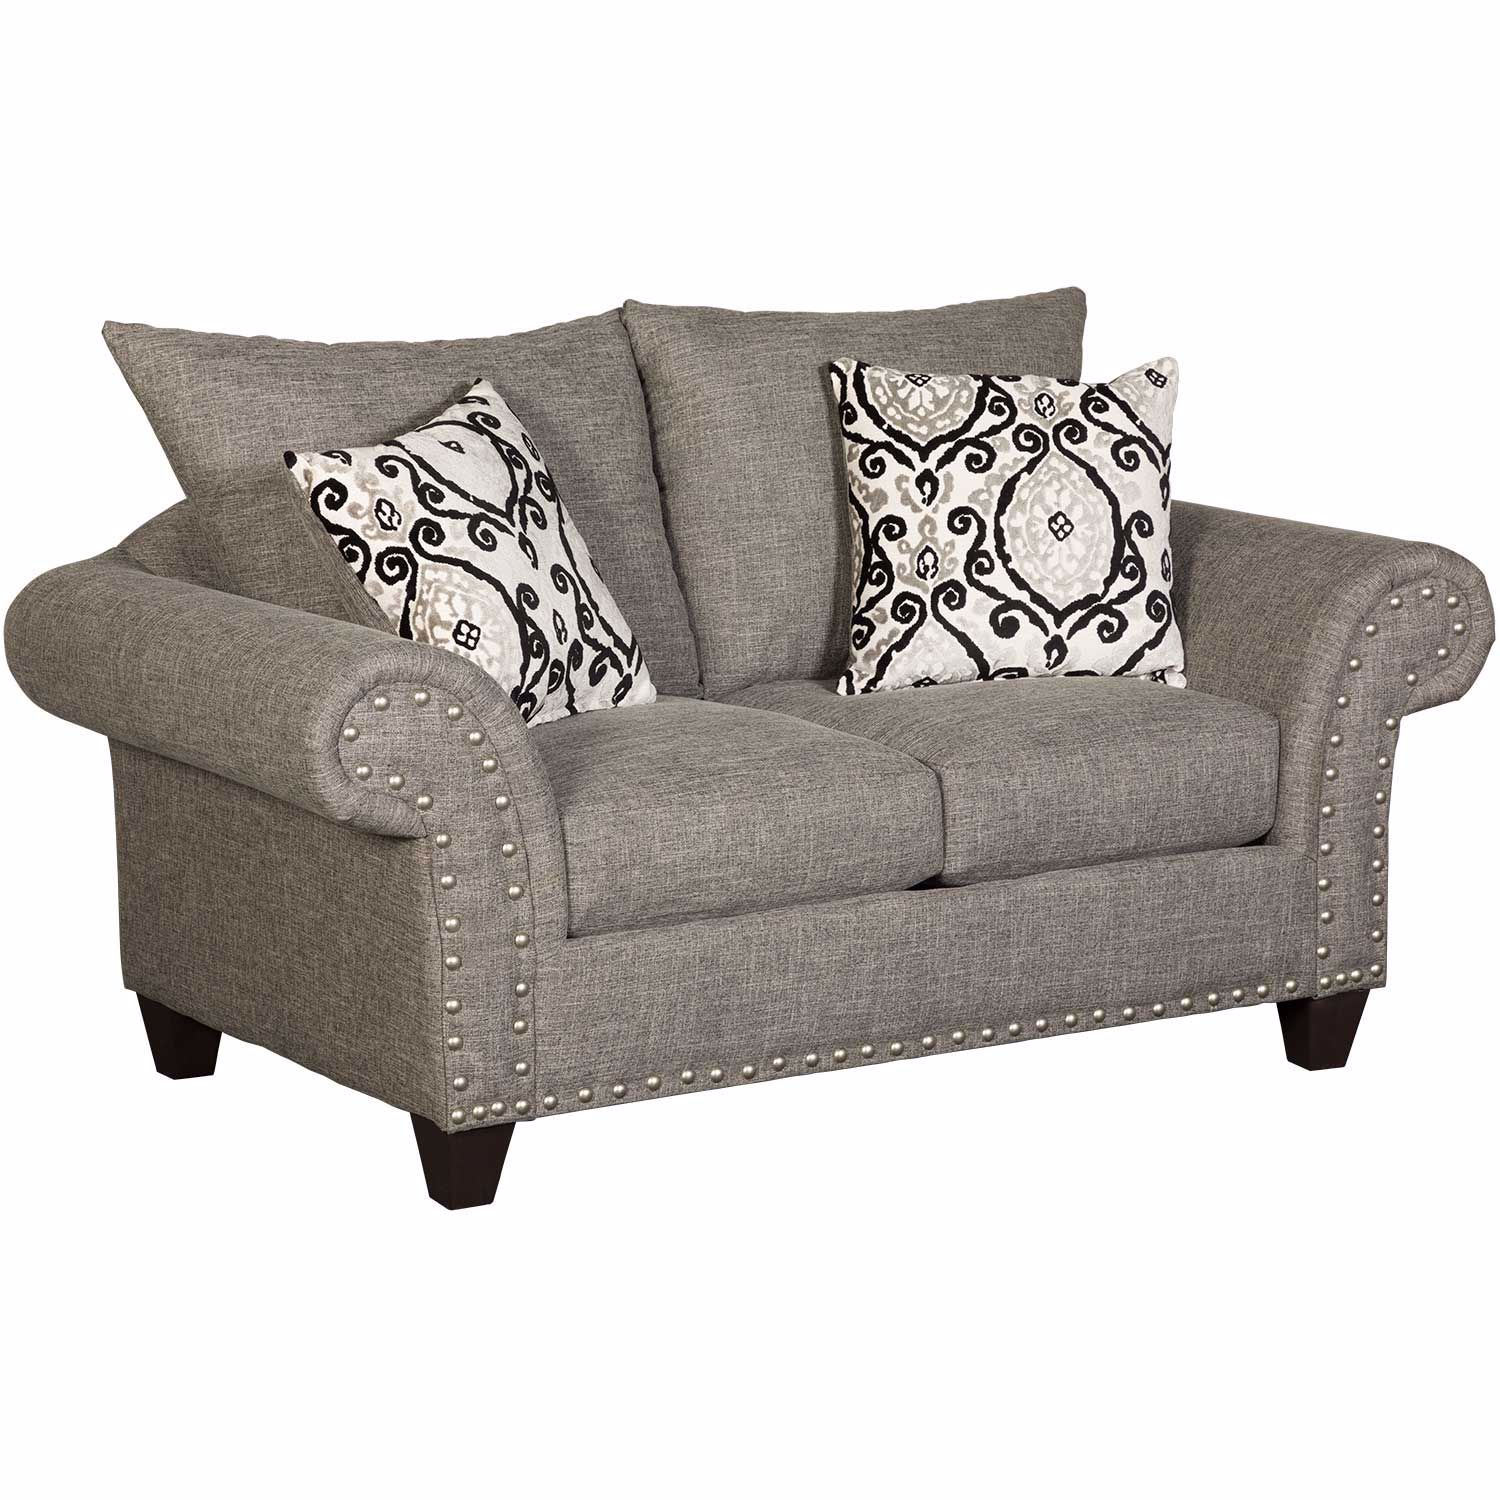 Picture of Odette Onyx Loveseat